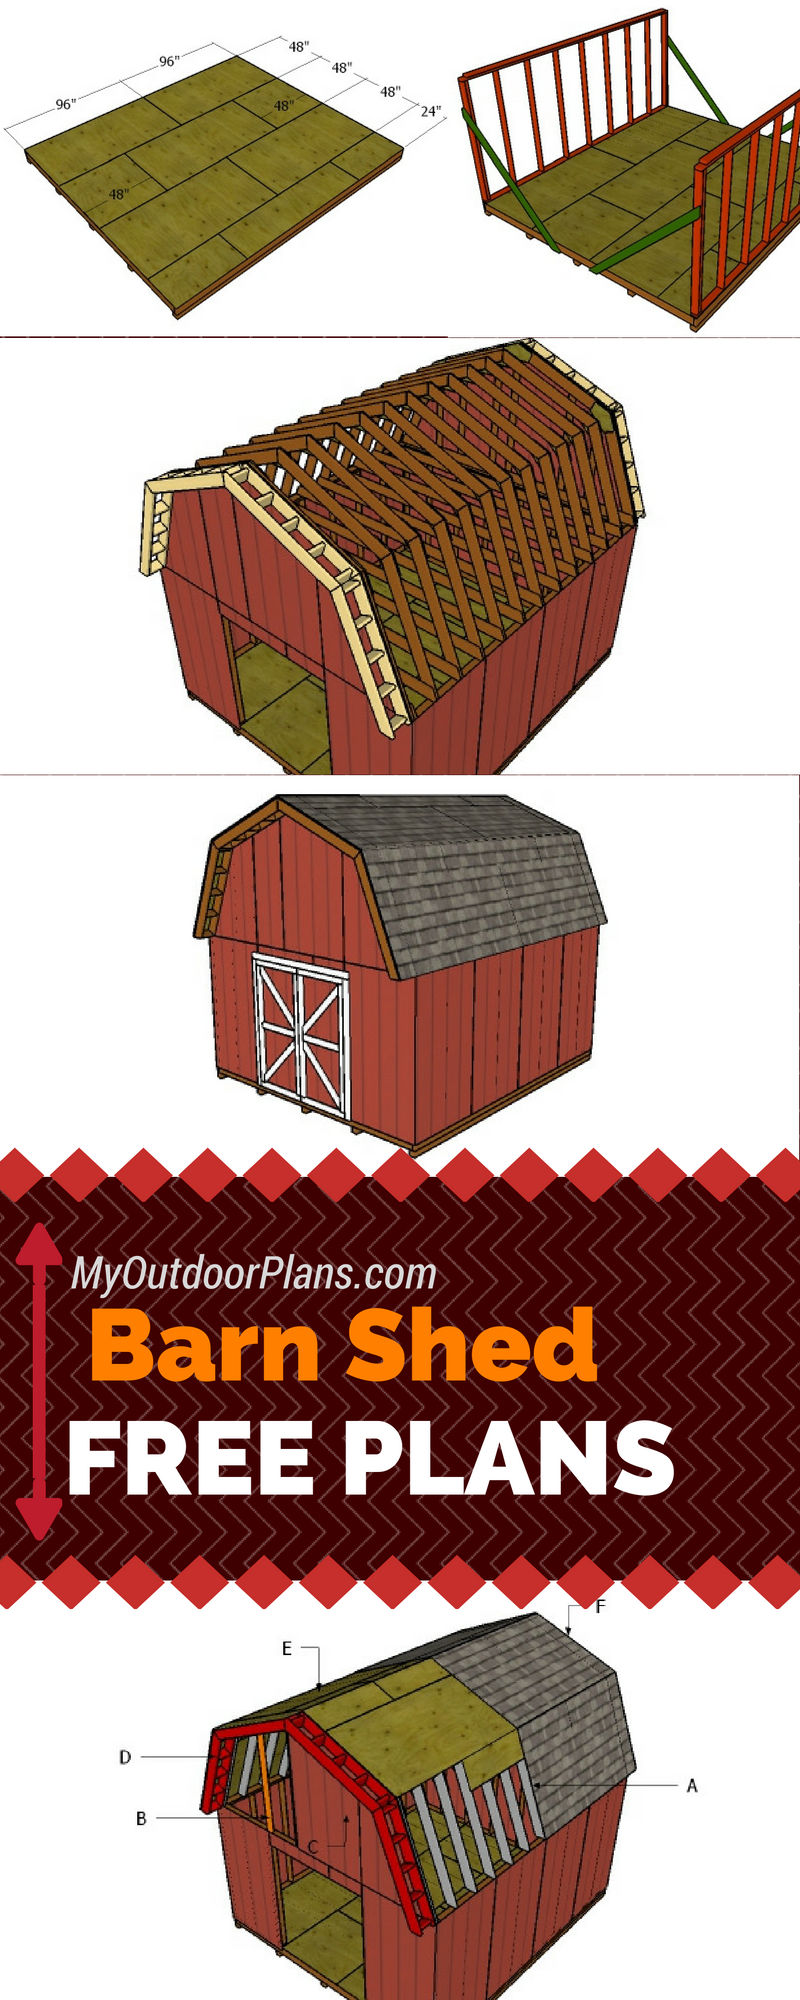 Free Barn Shed Plans - Learn how to build a 14x16 gambrel shed with ...